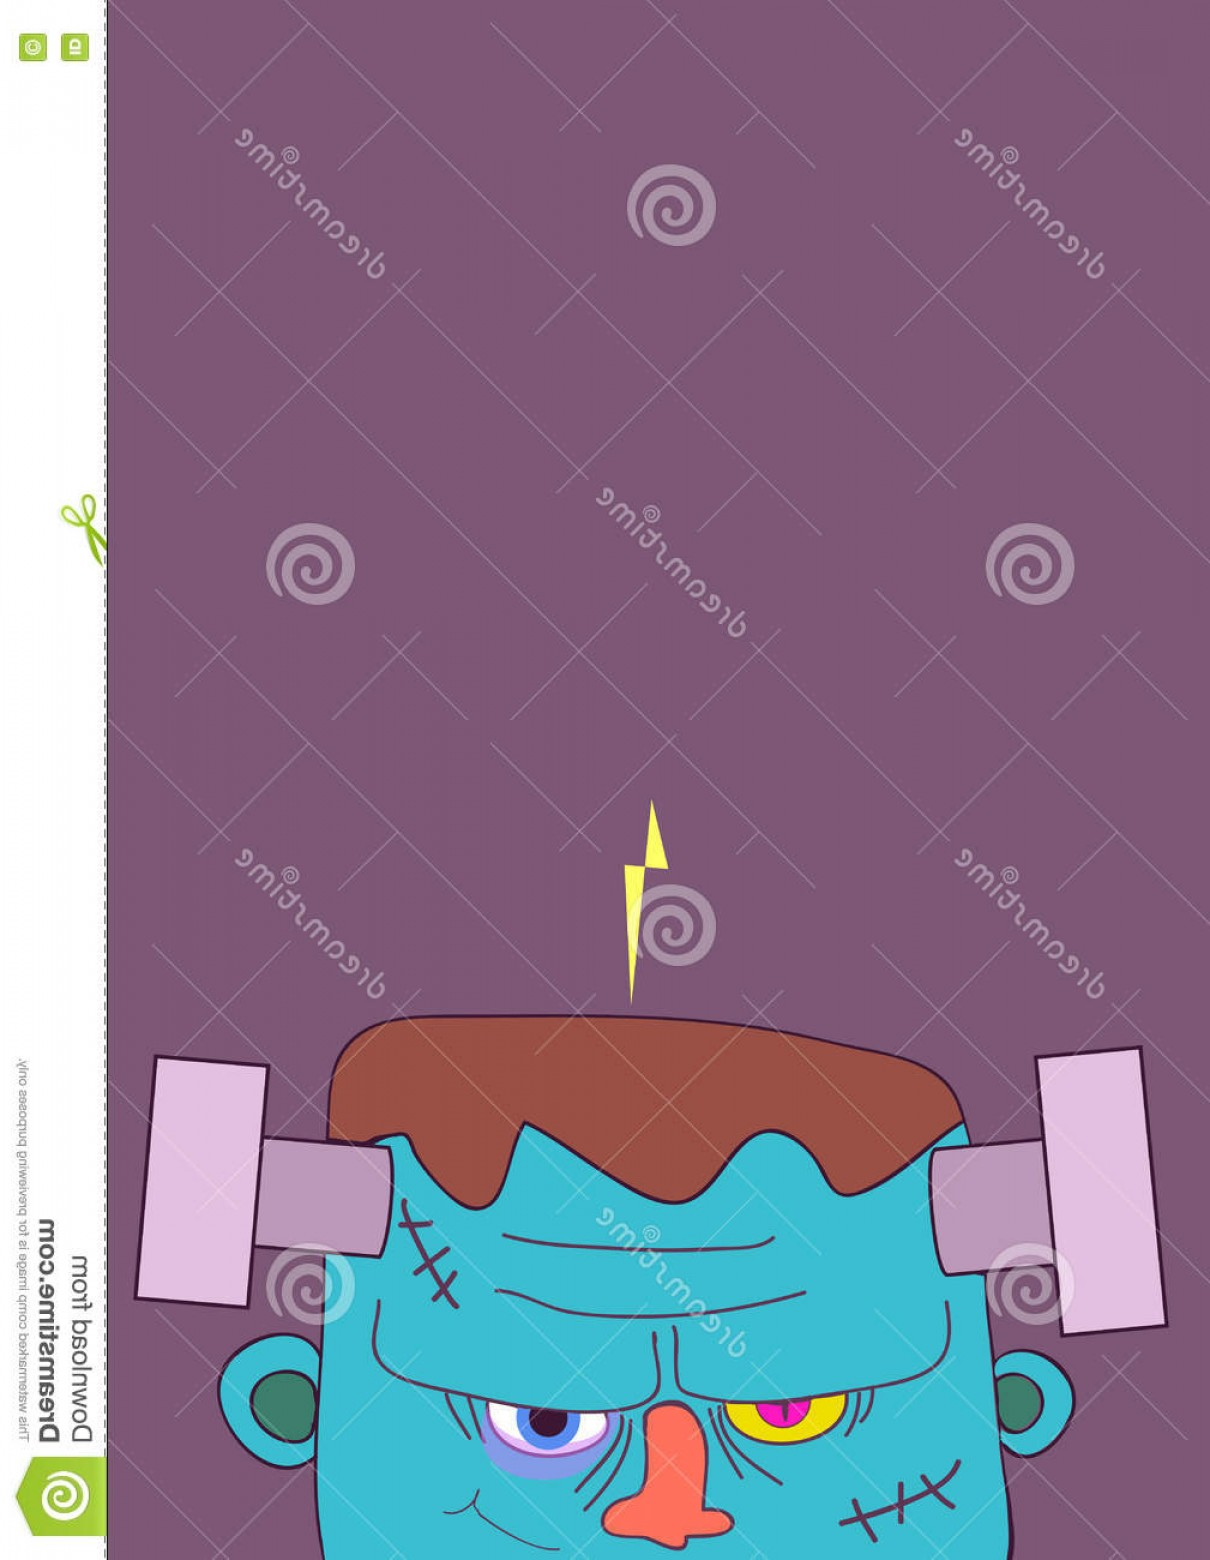 Frankenstein Vector Poster: Stock Illustration Frankenstein Halloween Poster Vector Illustration Image